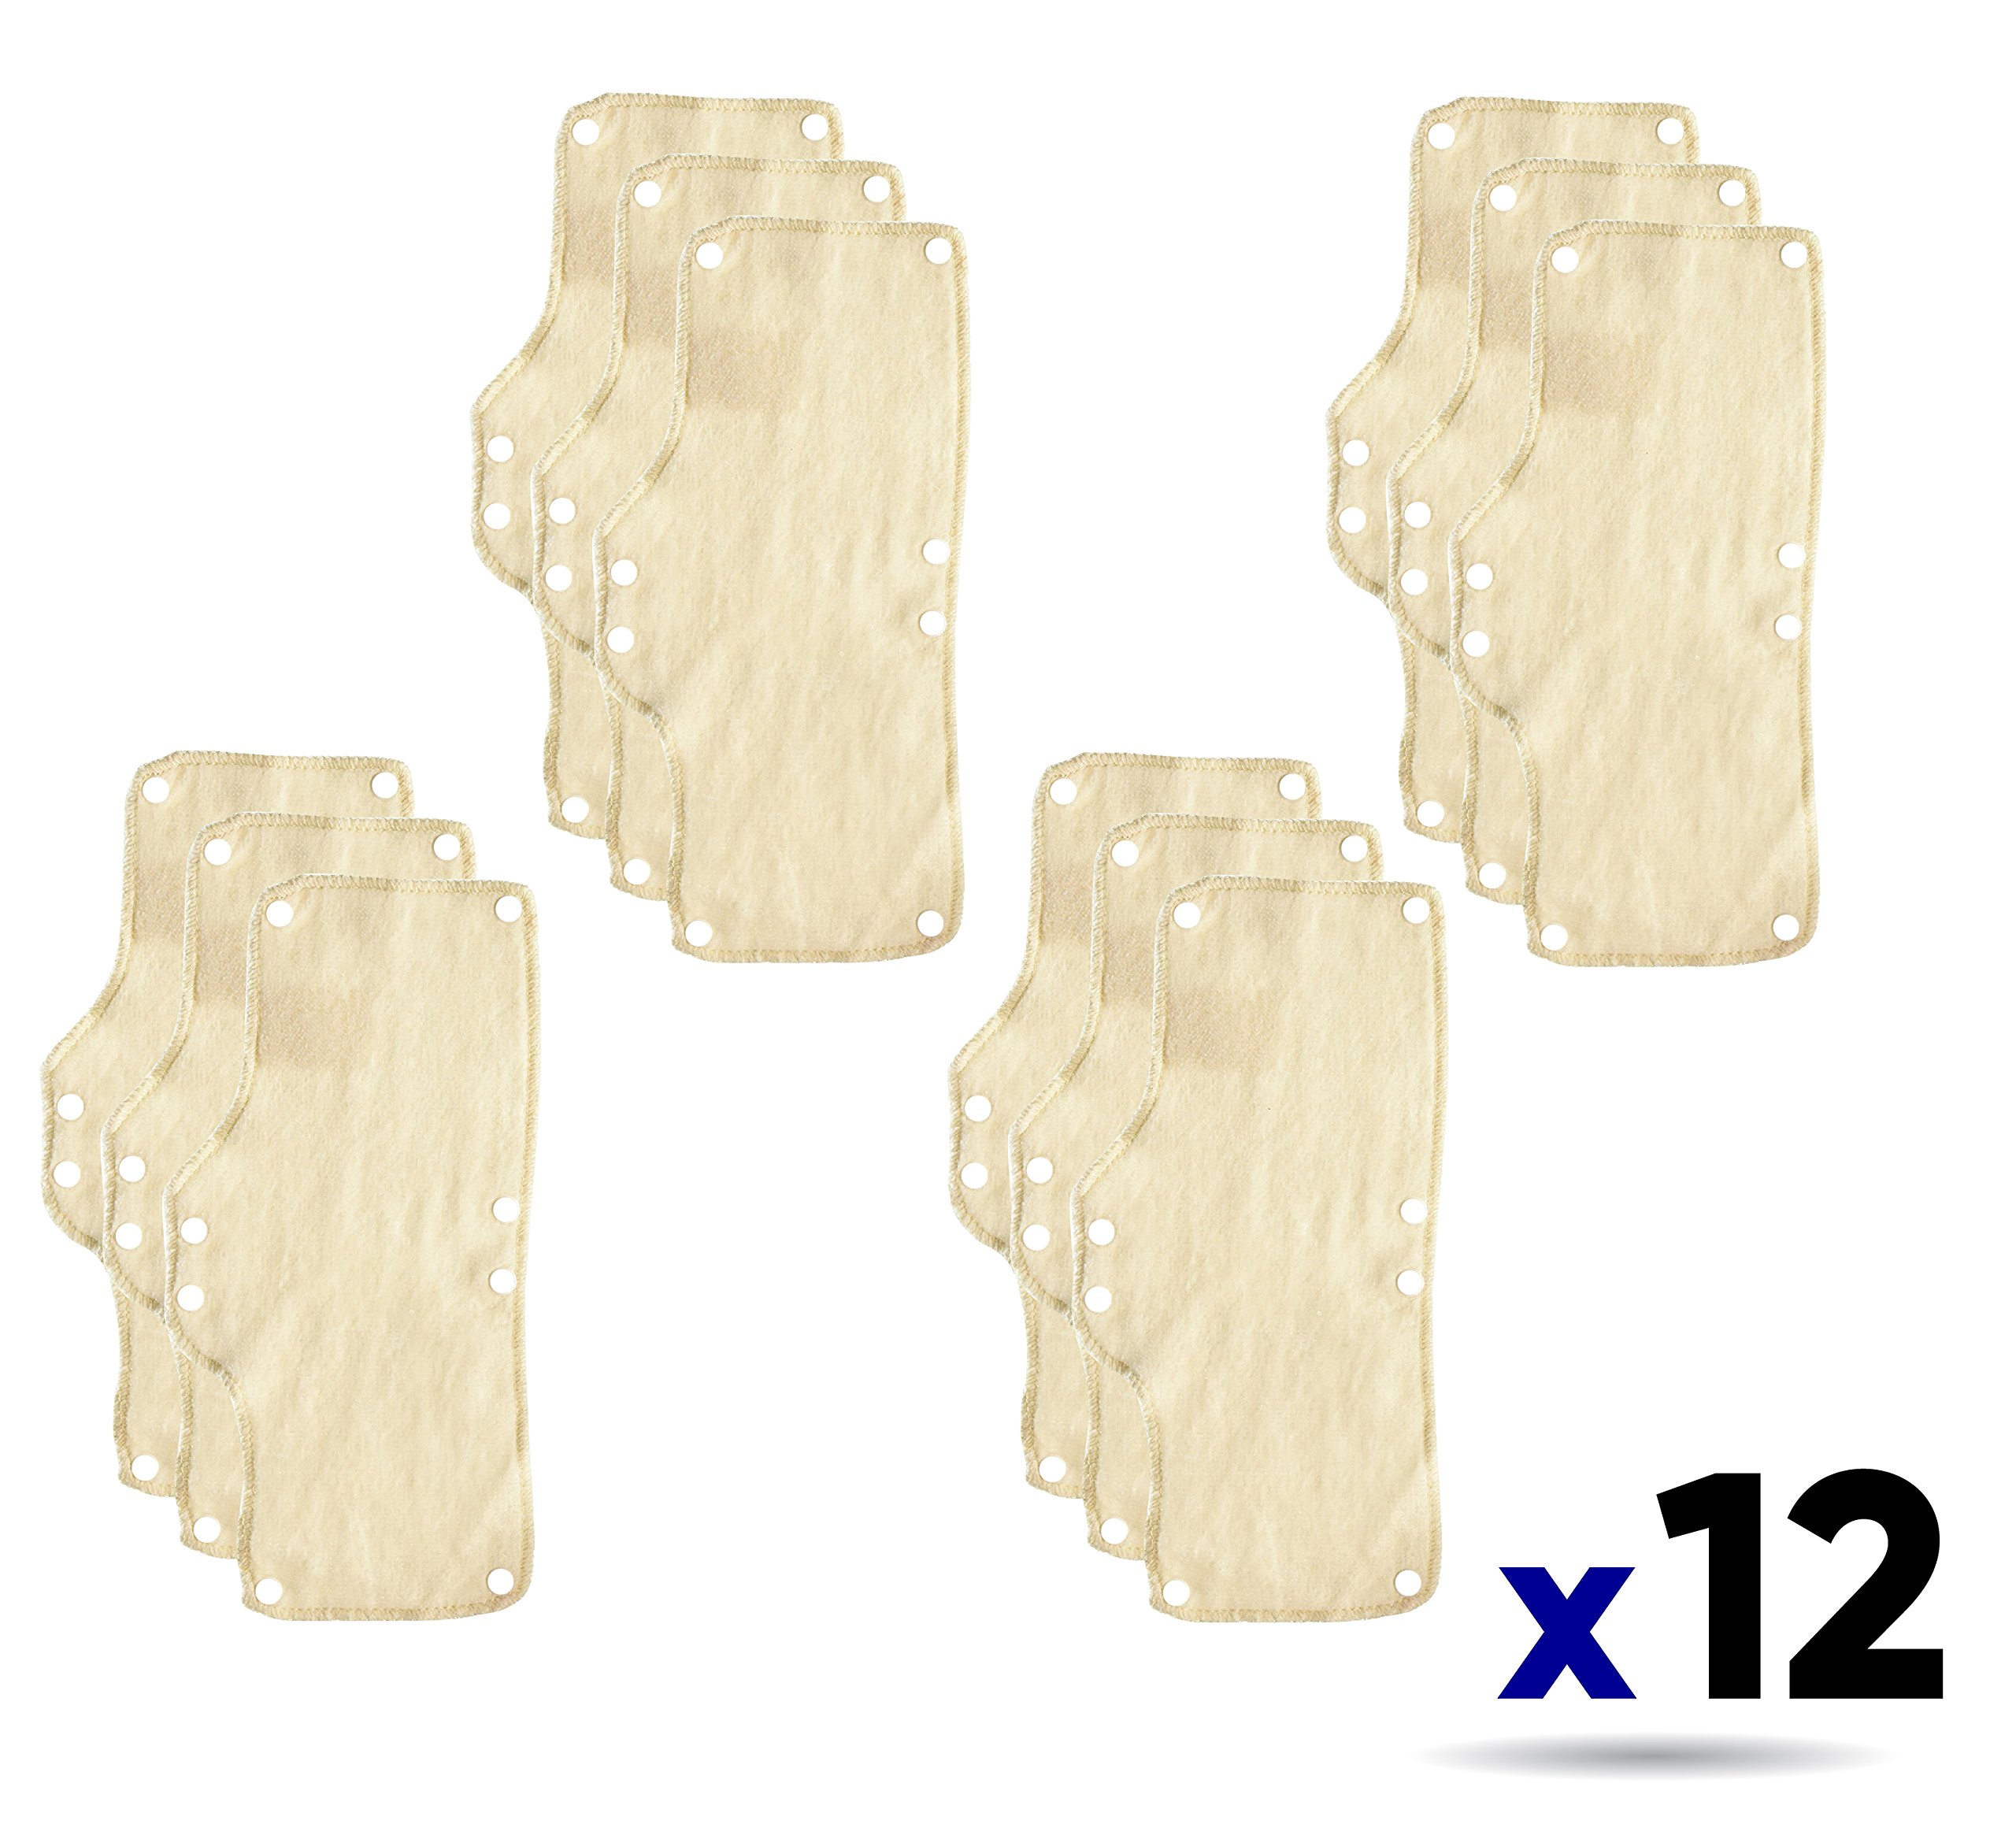 12PK Occunomix 870 Terry Toppers Snap-On Sweatband for Headgear-Beige